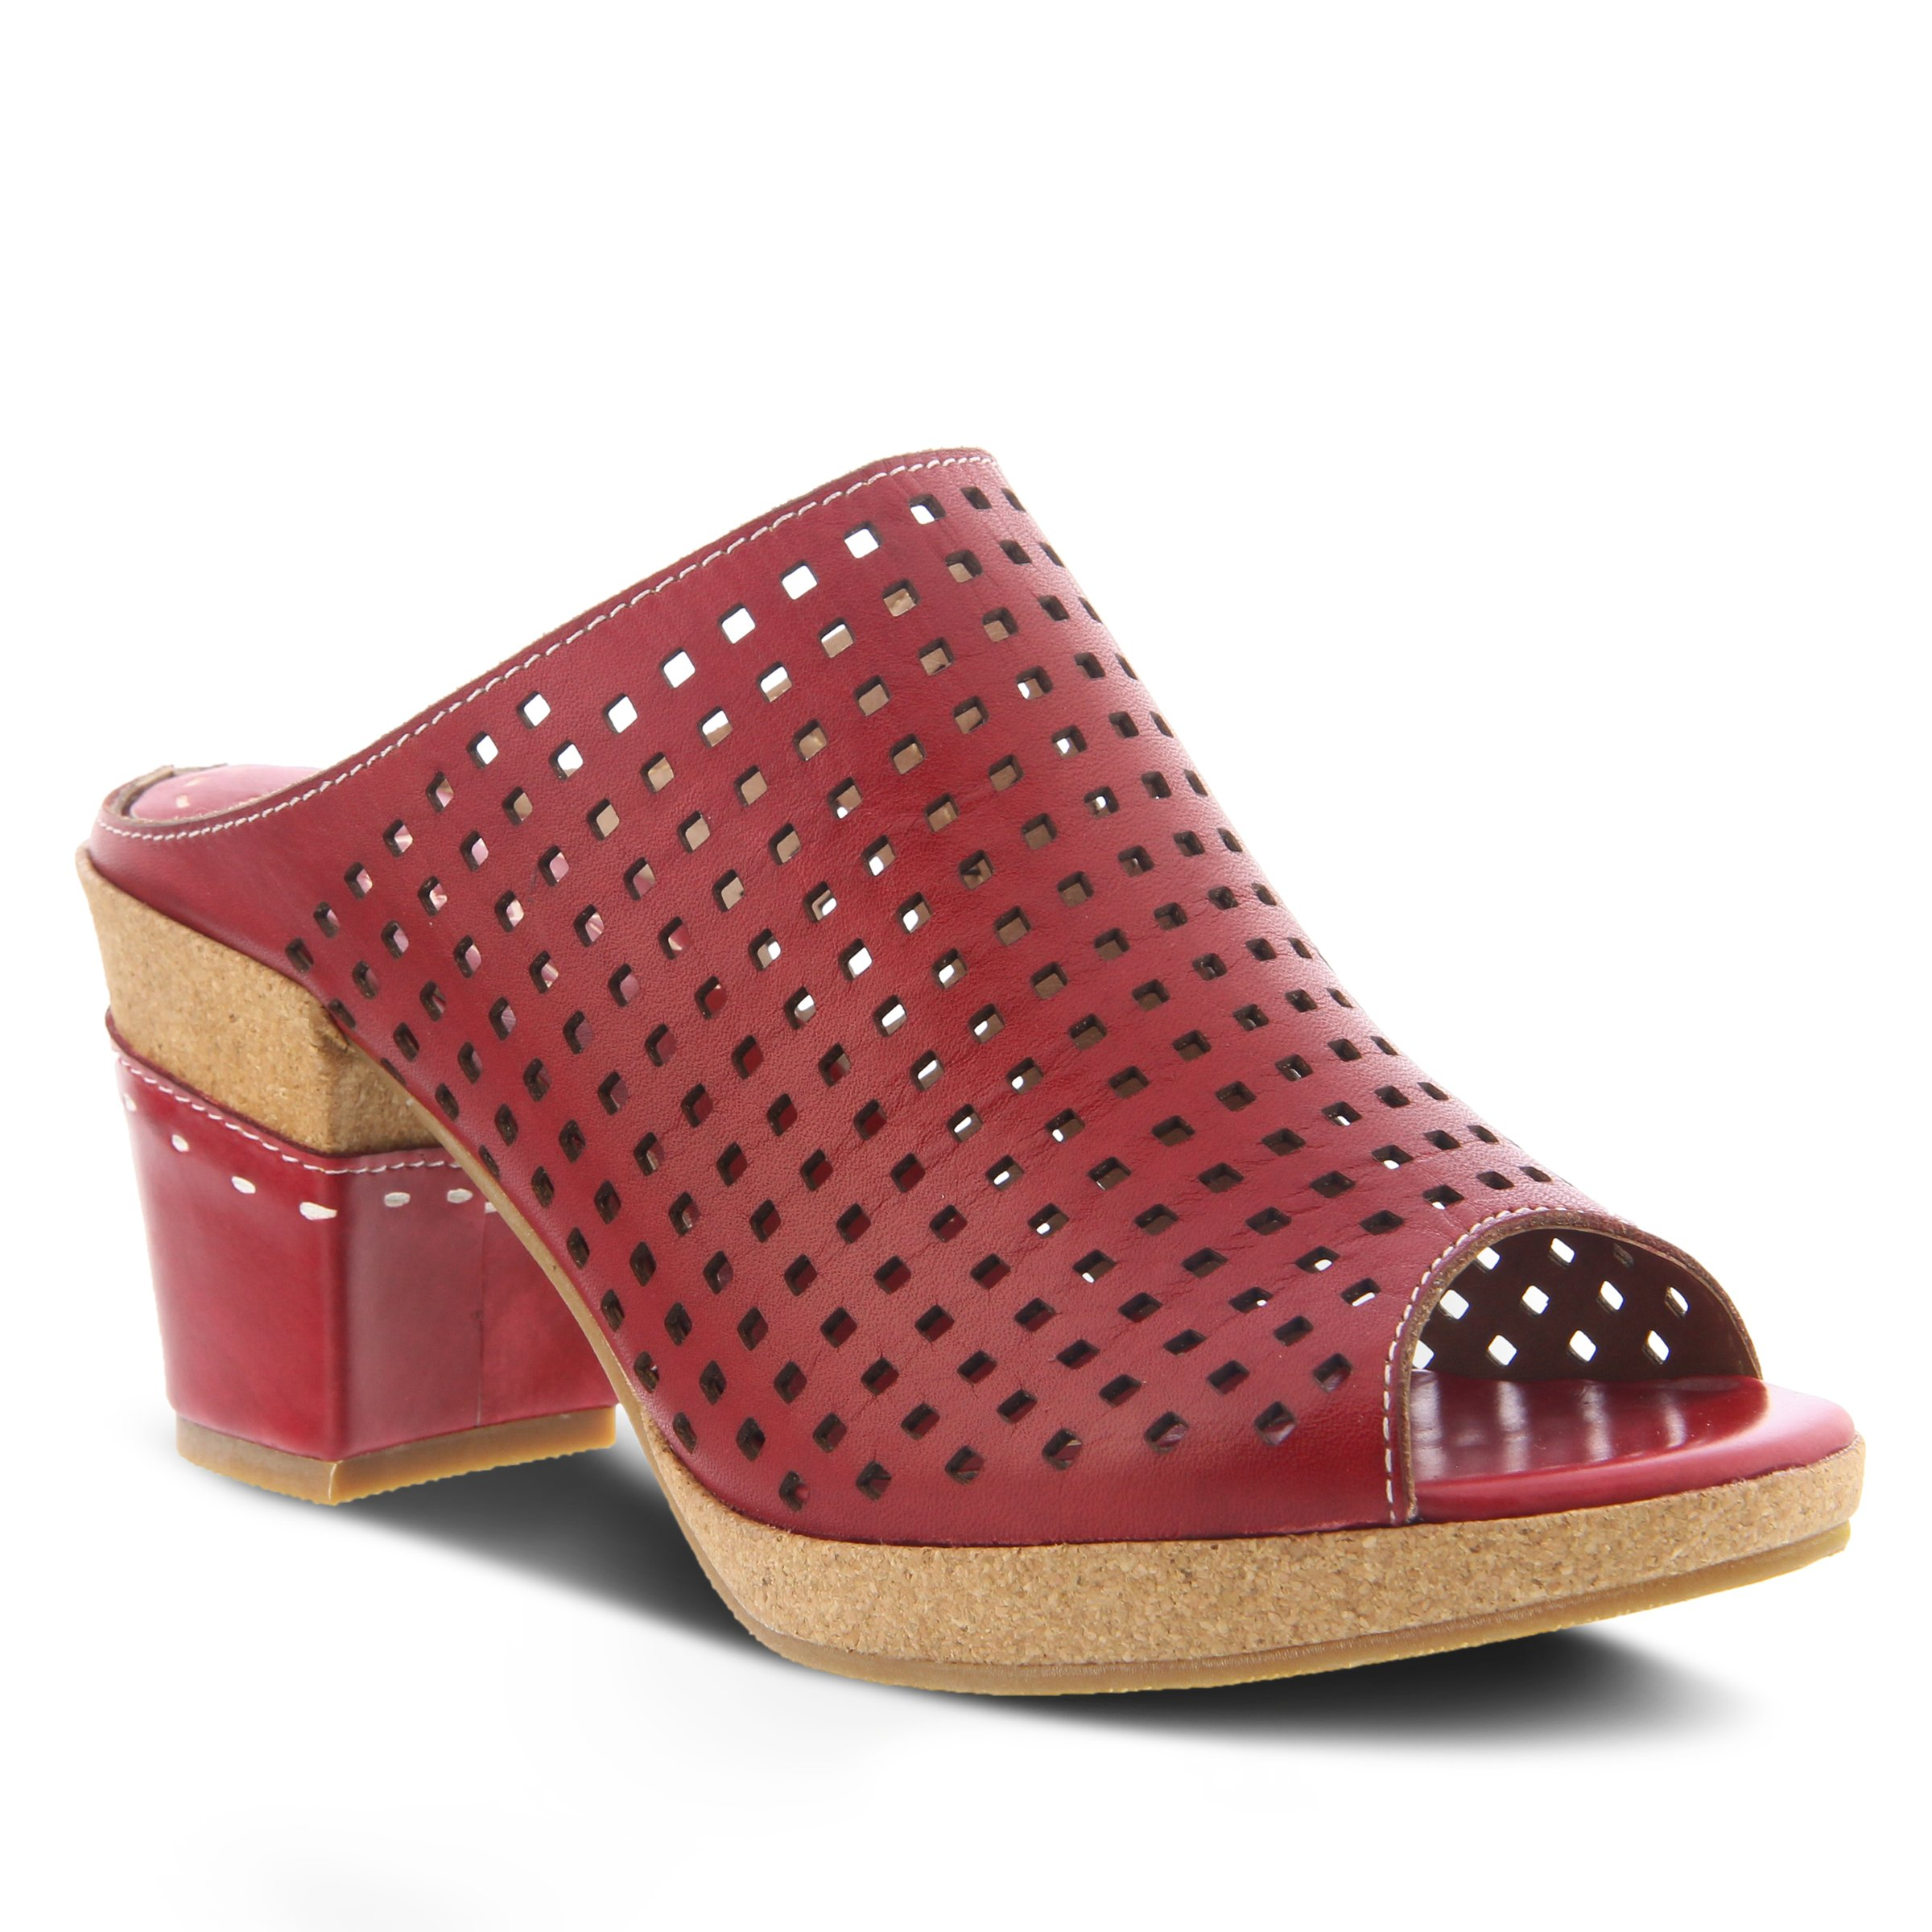 L'Artiste by Spring Step Women's Style Patience Red EURO Size 35 Leather Sandal